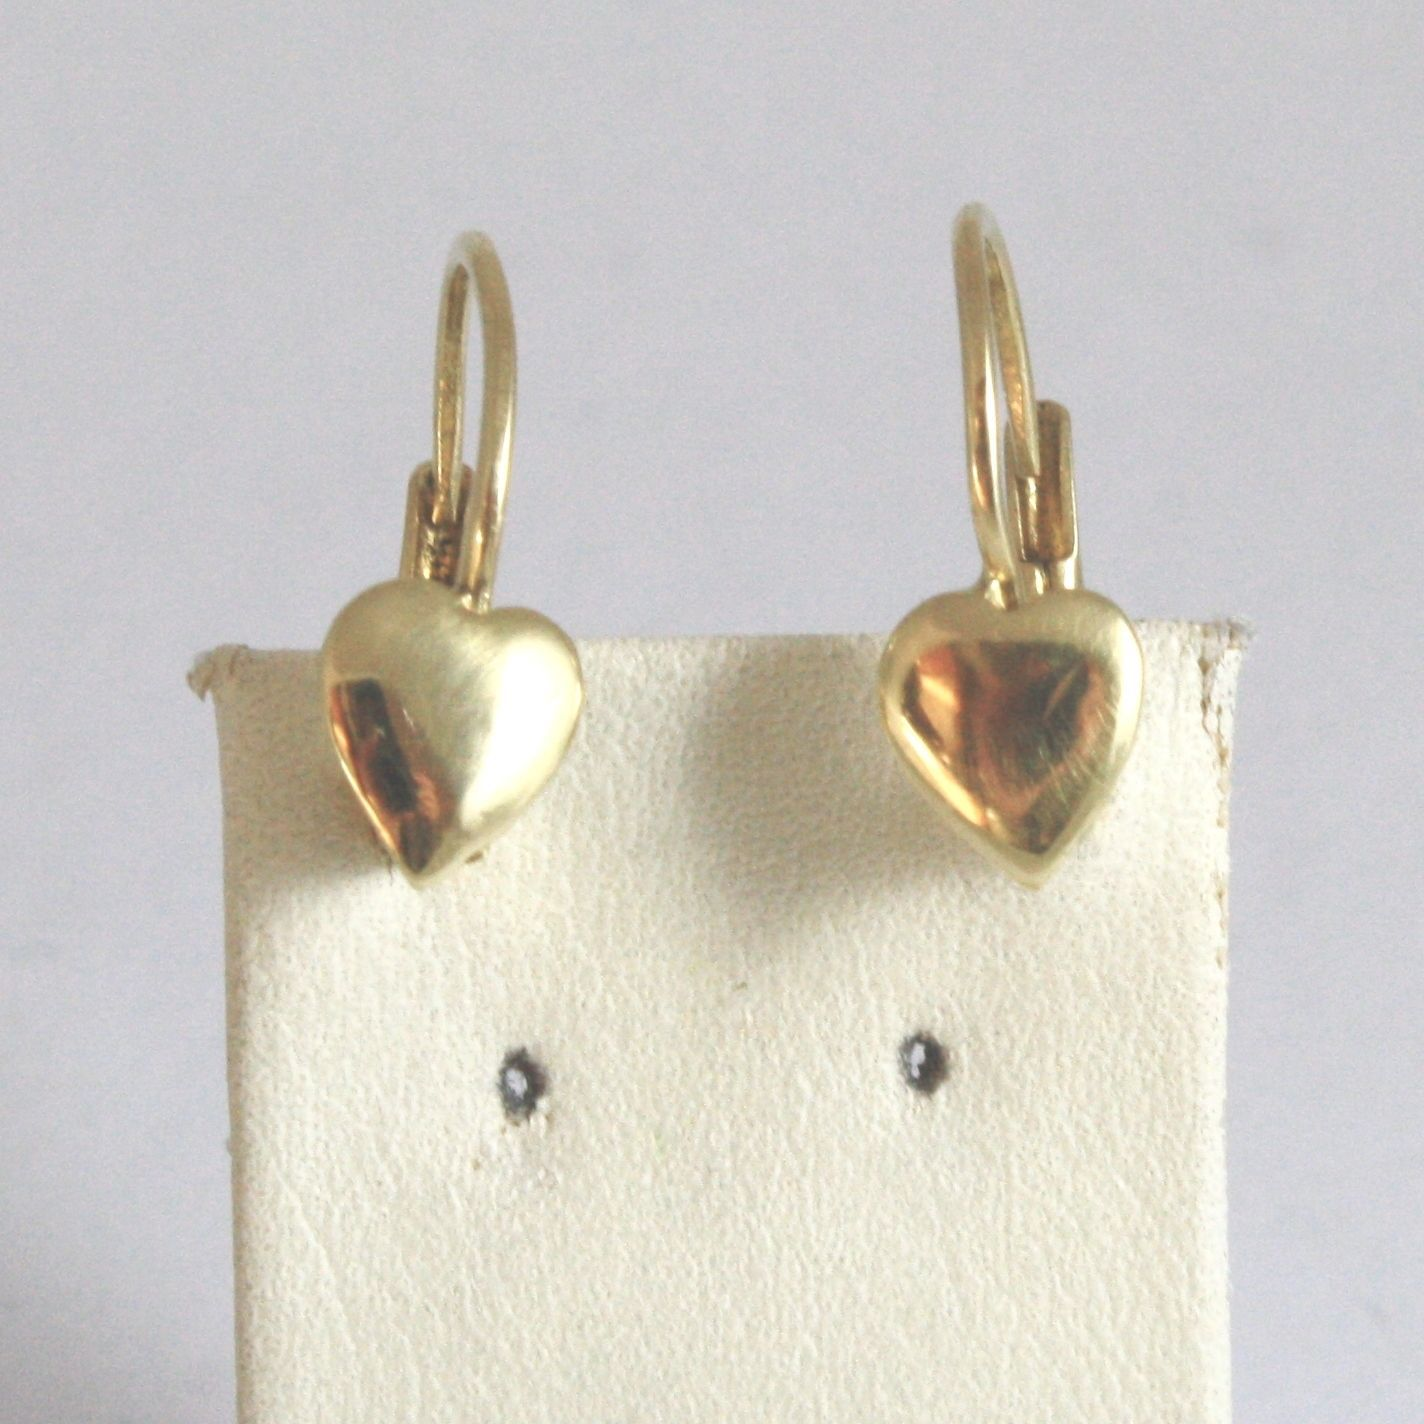 18K SOLID YELLOW GOLD PENDANT EARRINGS WITH PLATE HEART MADE IN ITALY 18K